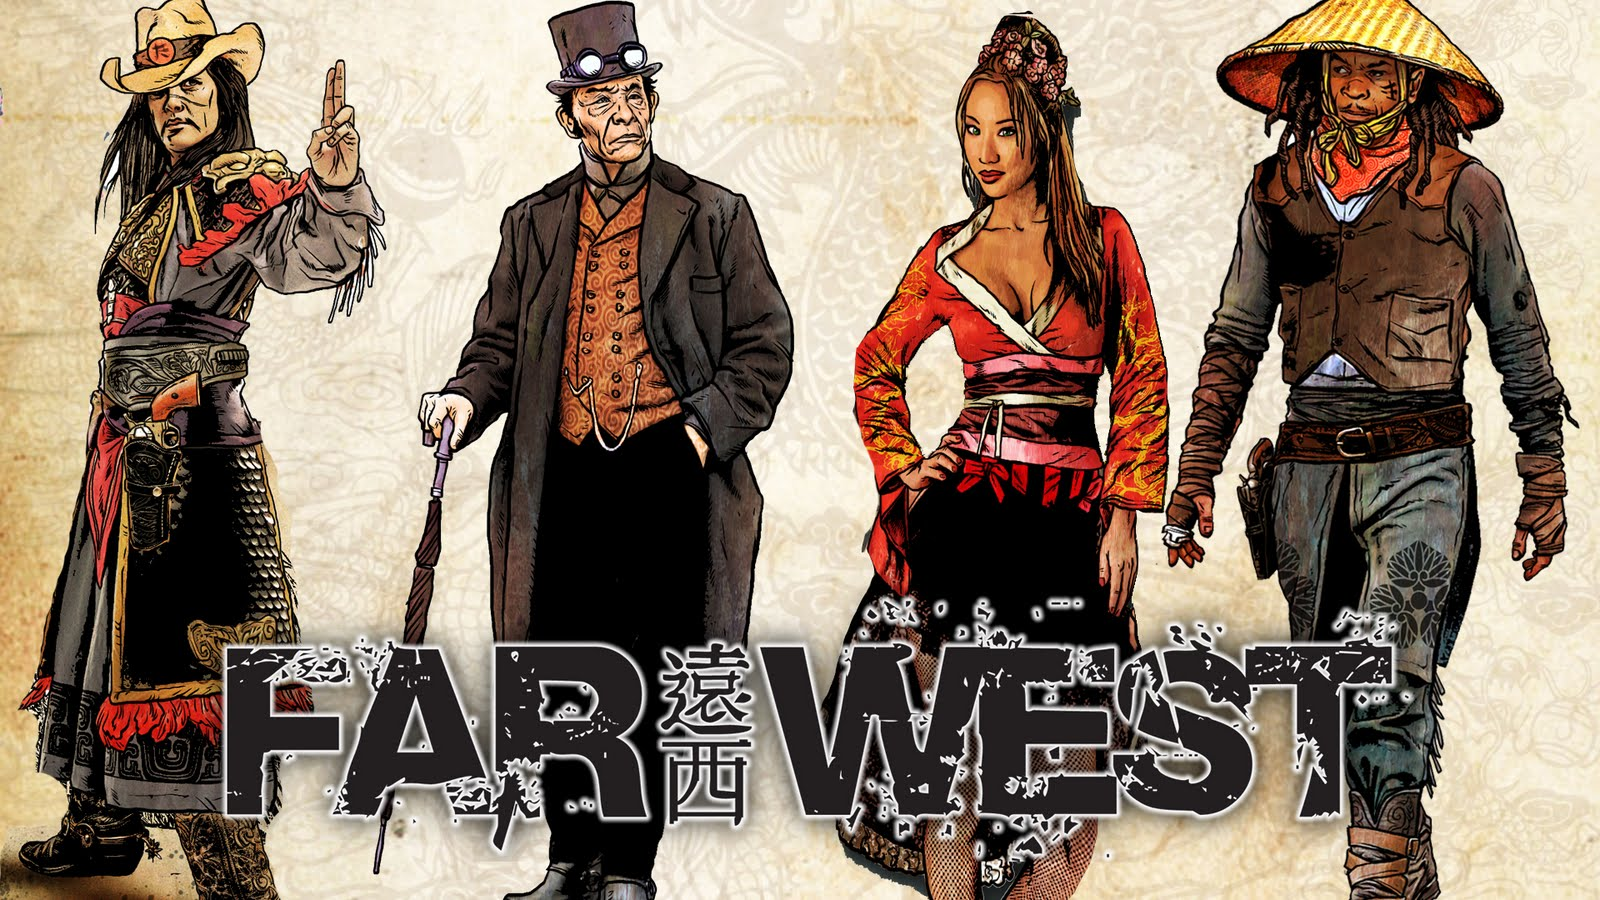 farwest_wallpaper.jpg